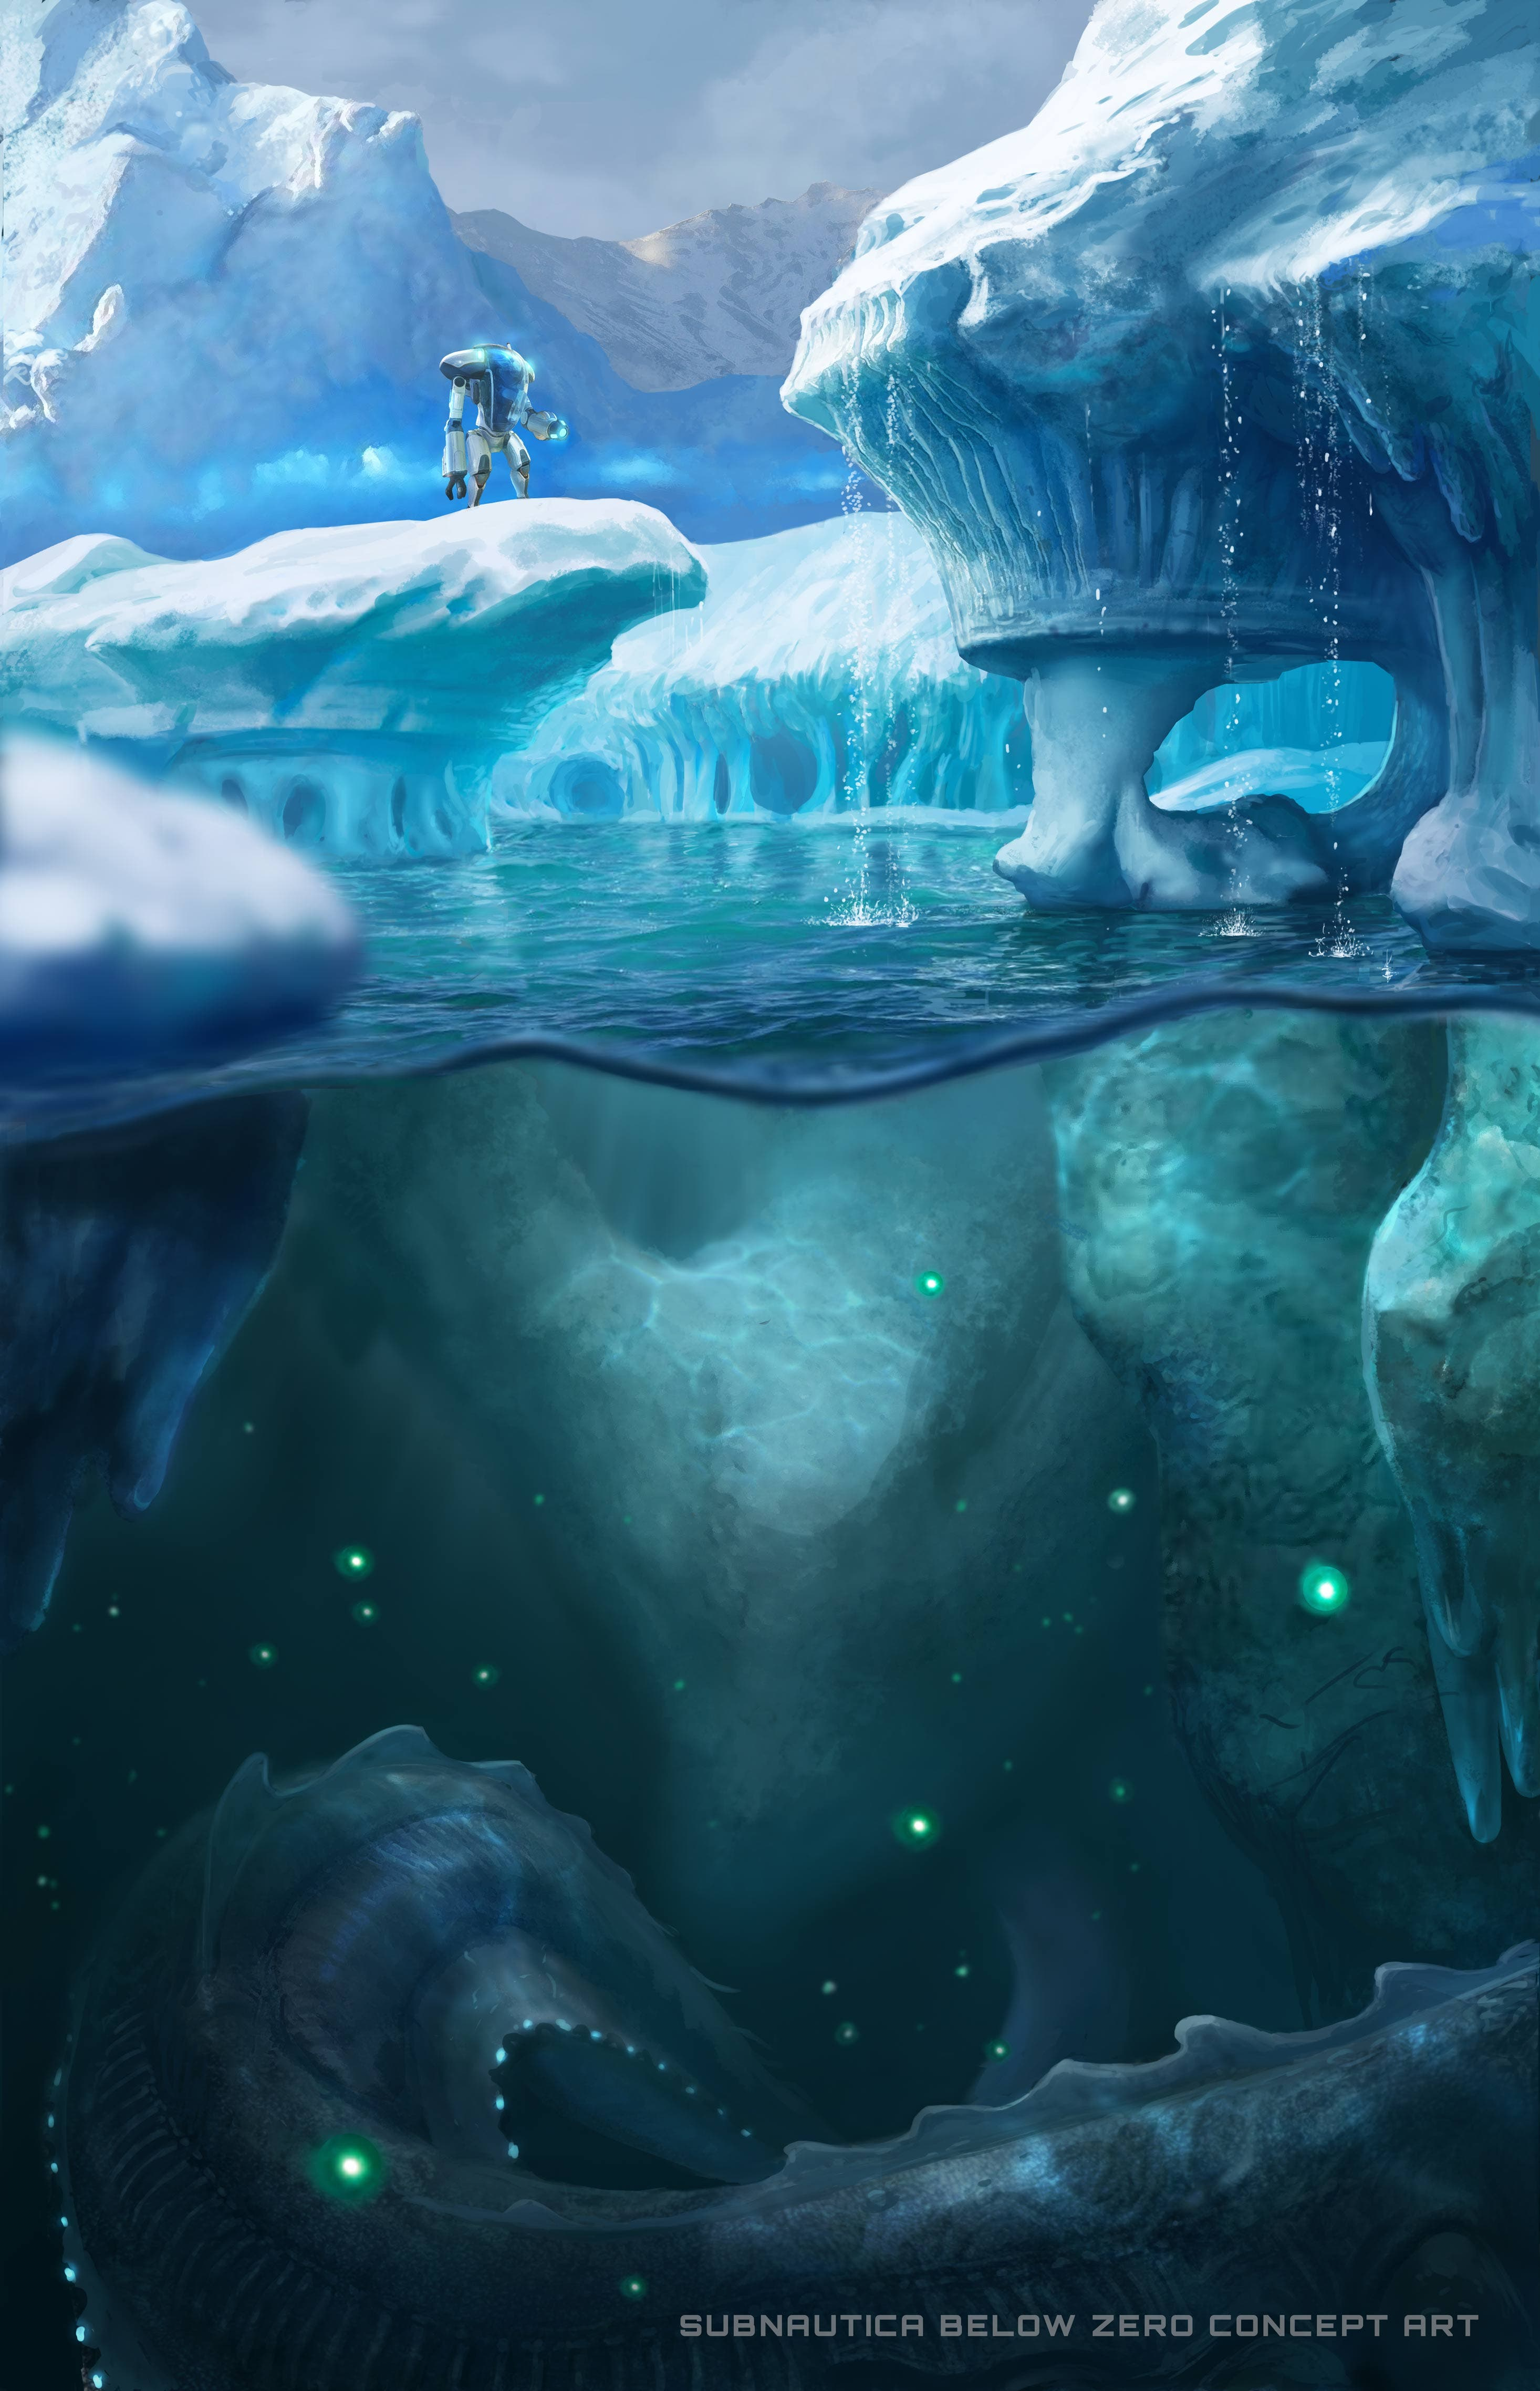 Subnautica: Below Zero announced as a standalone expansion